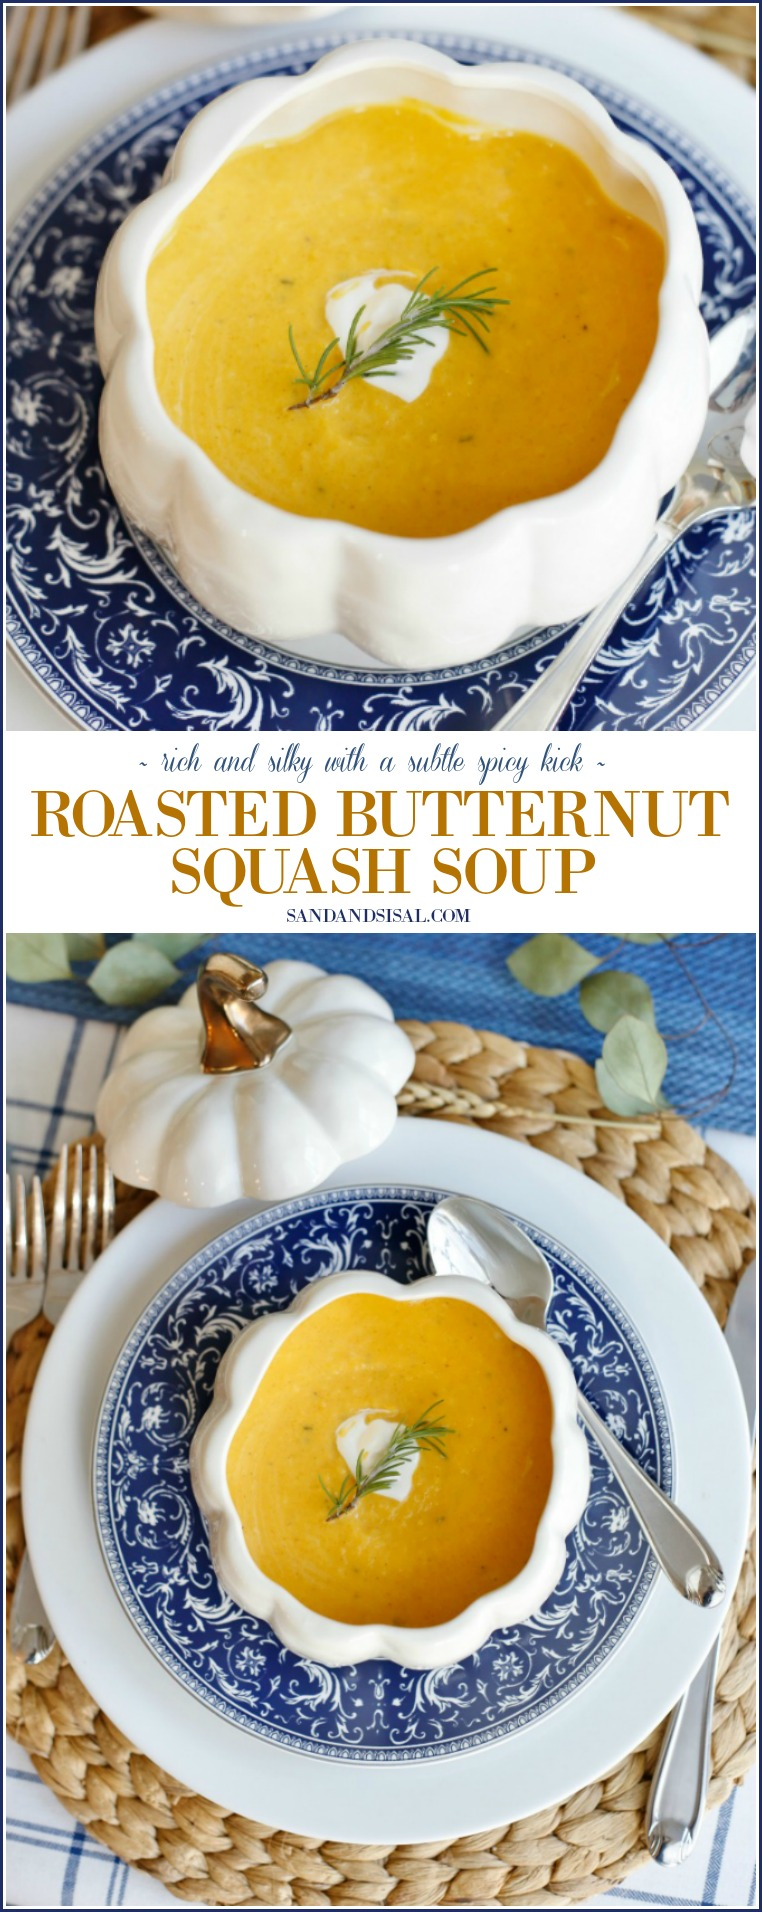 Roasted Butternut Squash Soup - rich and silky with a subtle spicy kick